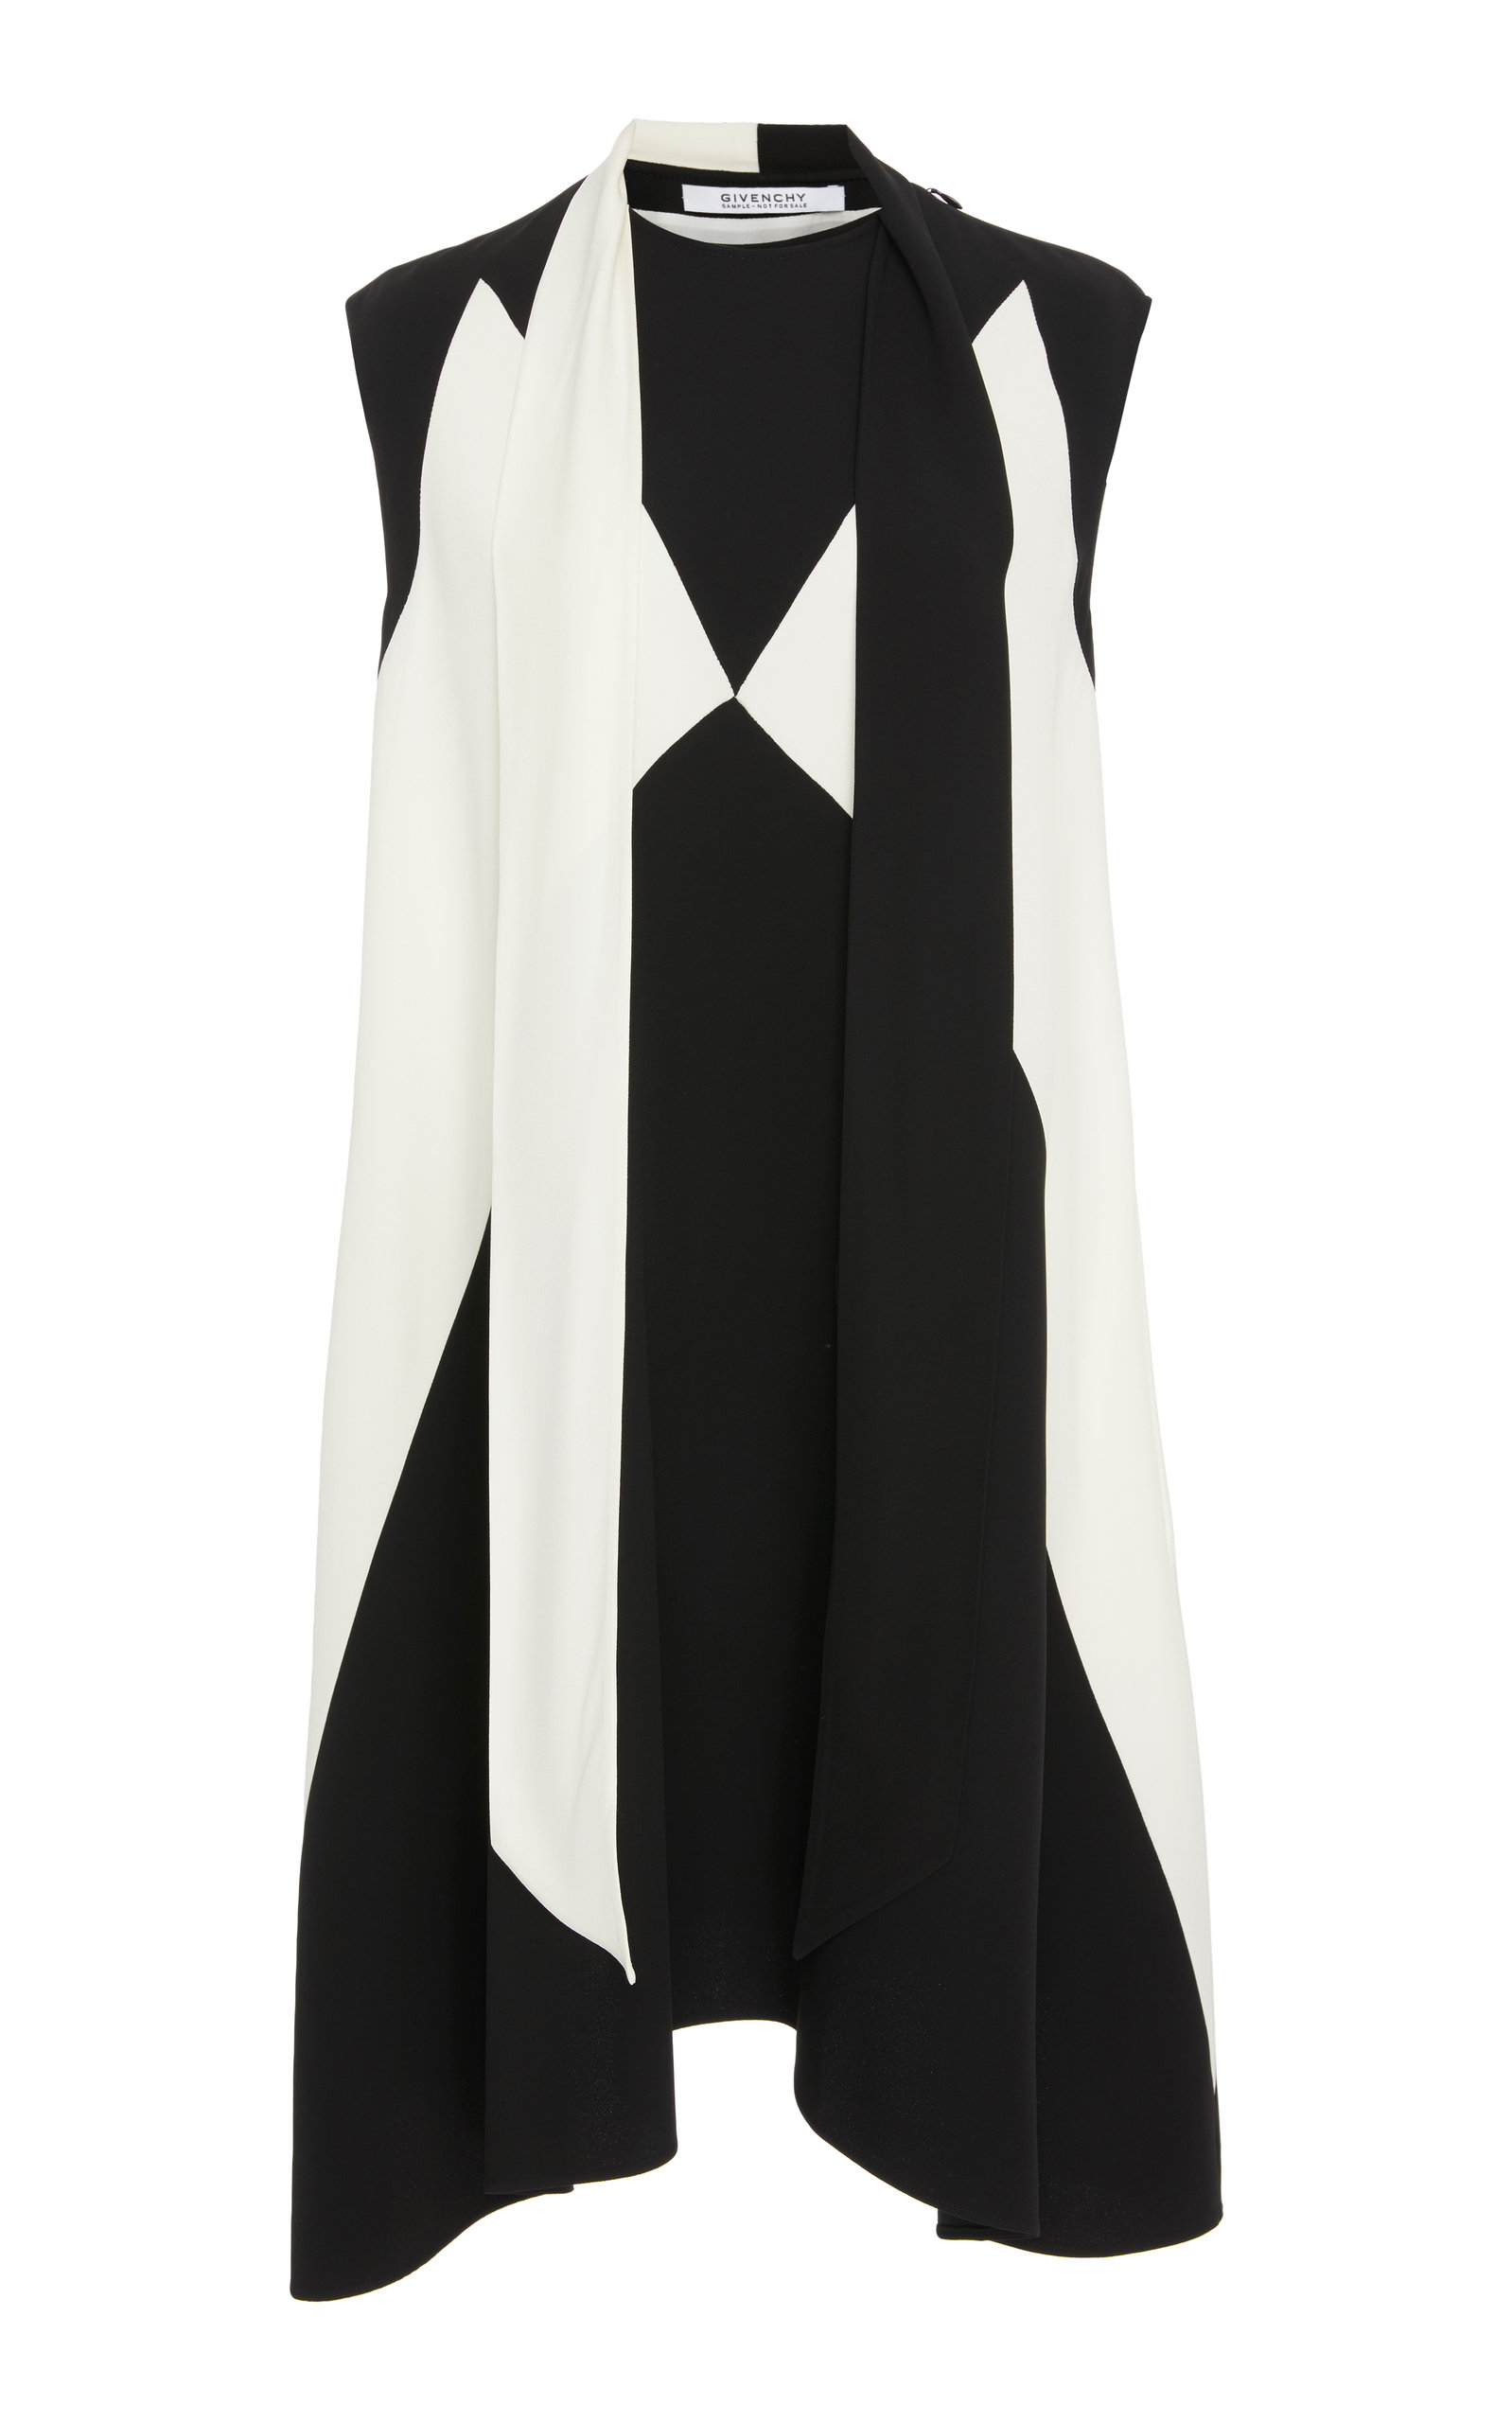 Sleeveless Graphic-Print Short Dress W/ Scarf Detail in Black from Marissa Collections